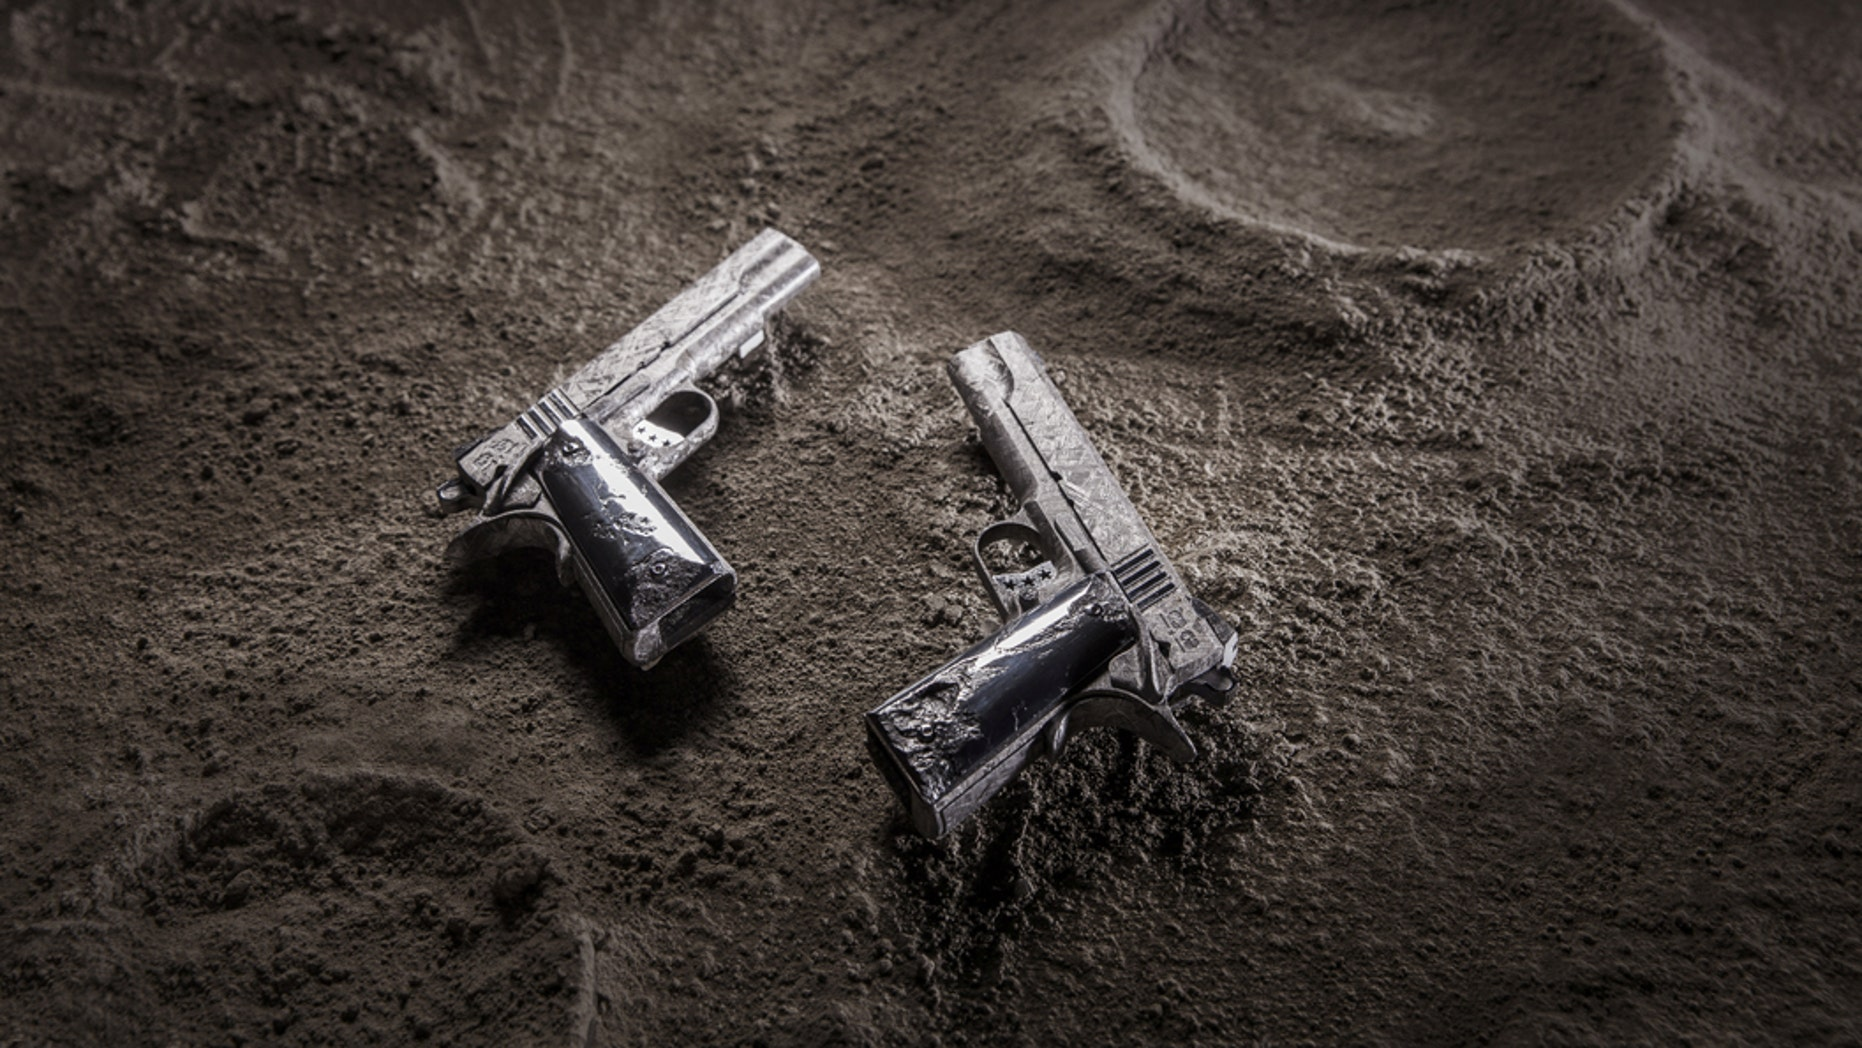 A high-end weapons company in the U.S. has produced what are the world's most expensive handguns, at $2.25 million each.